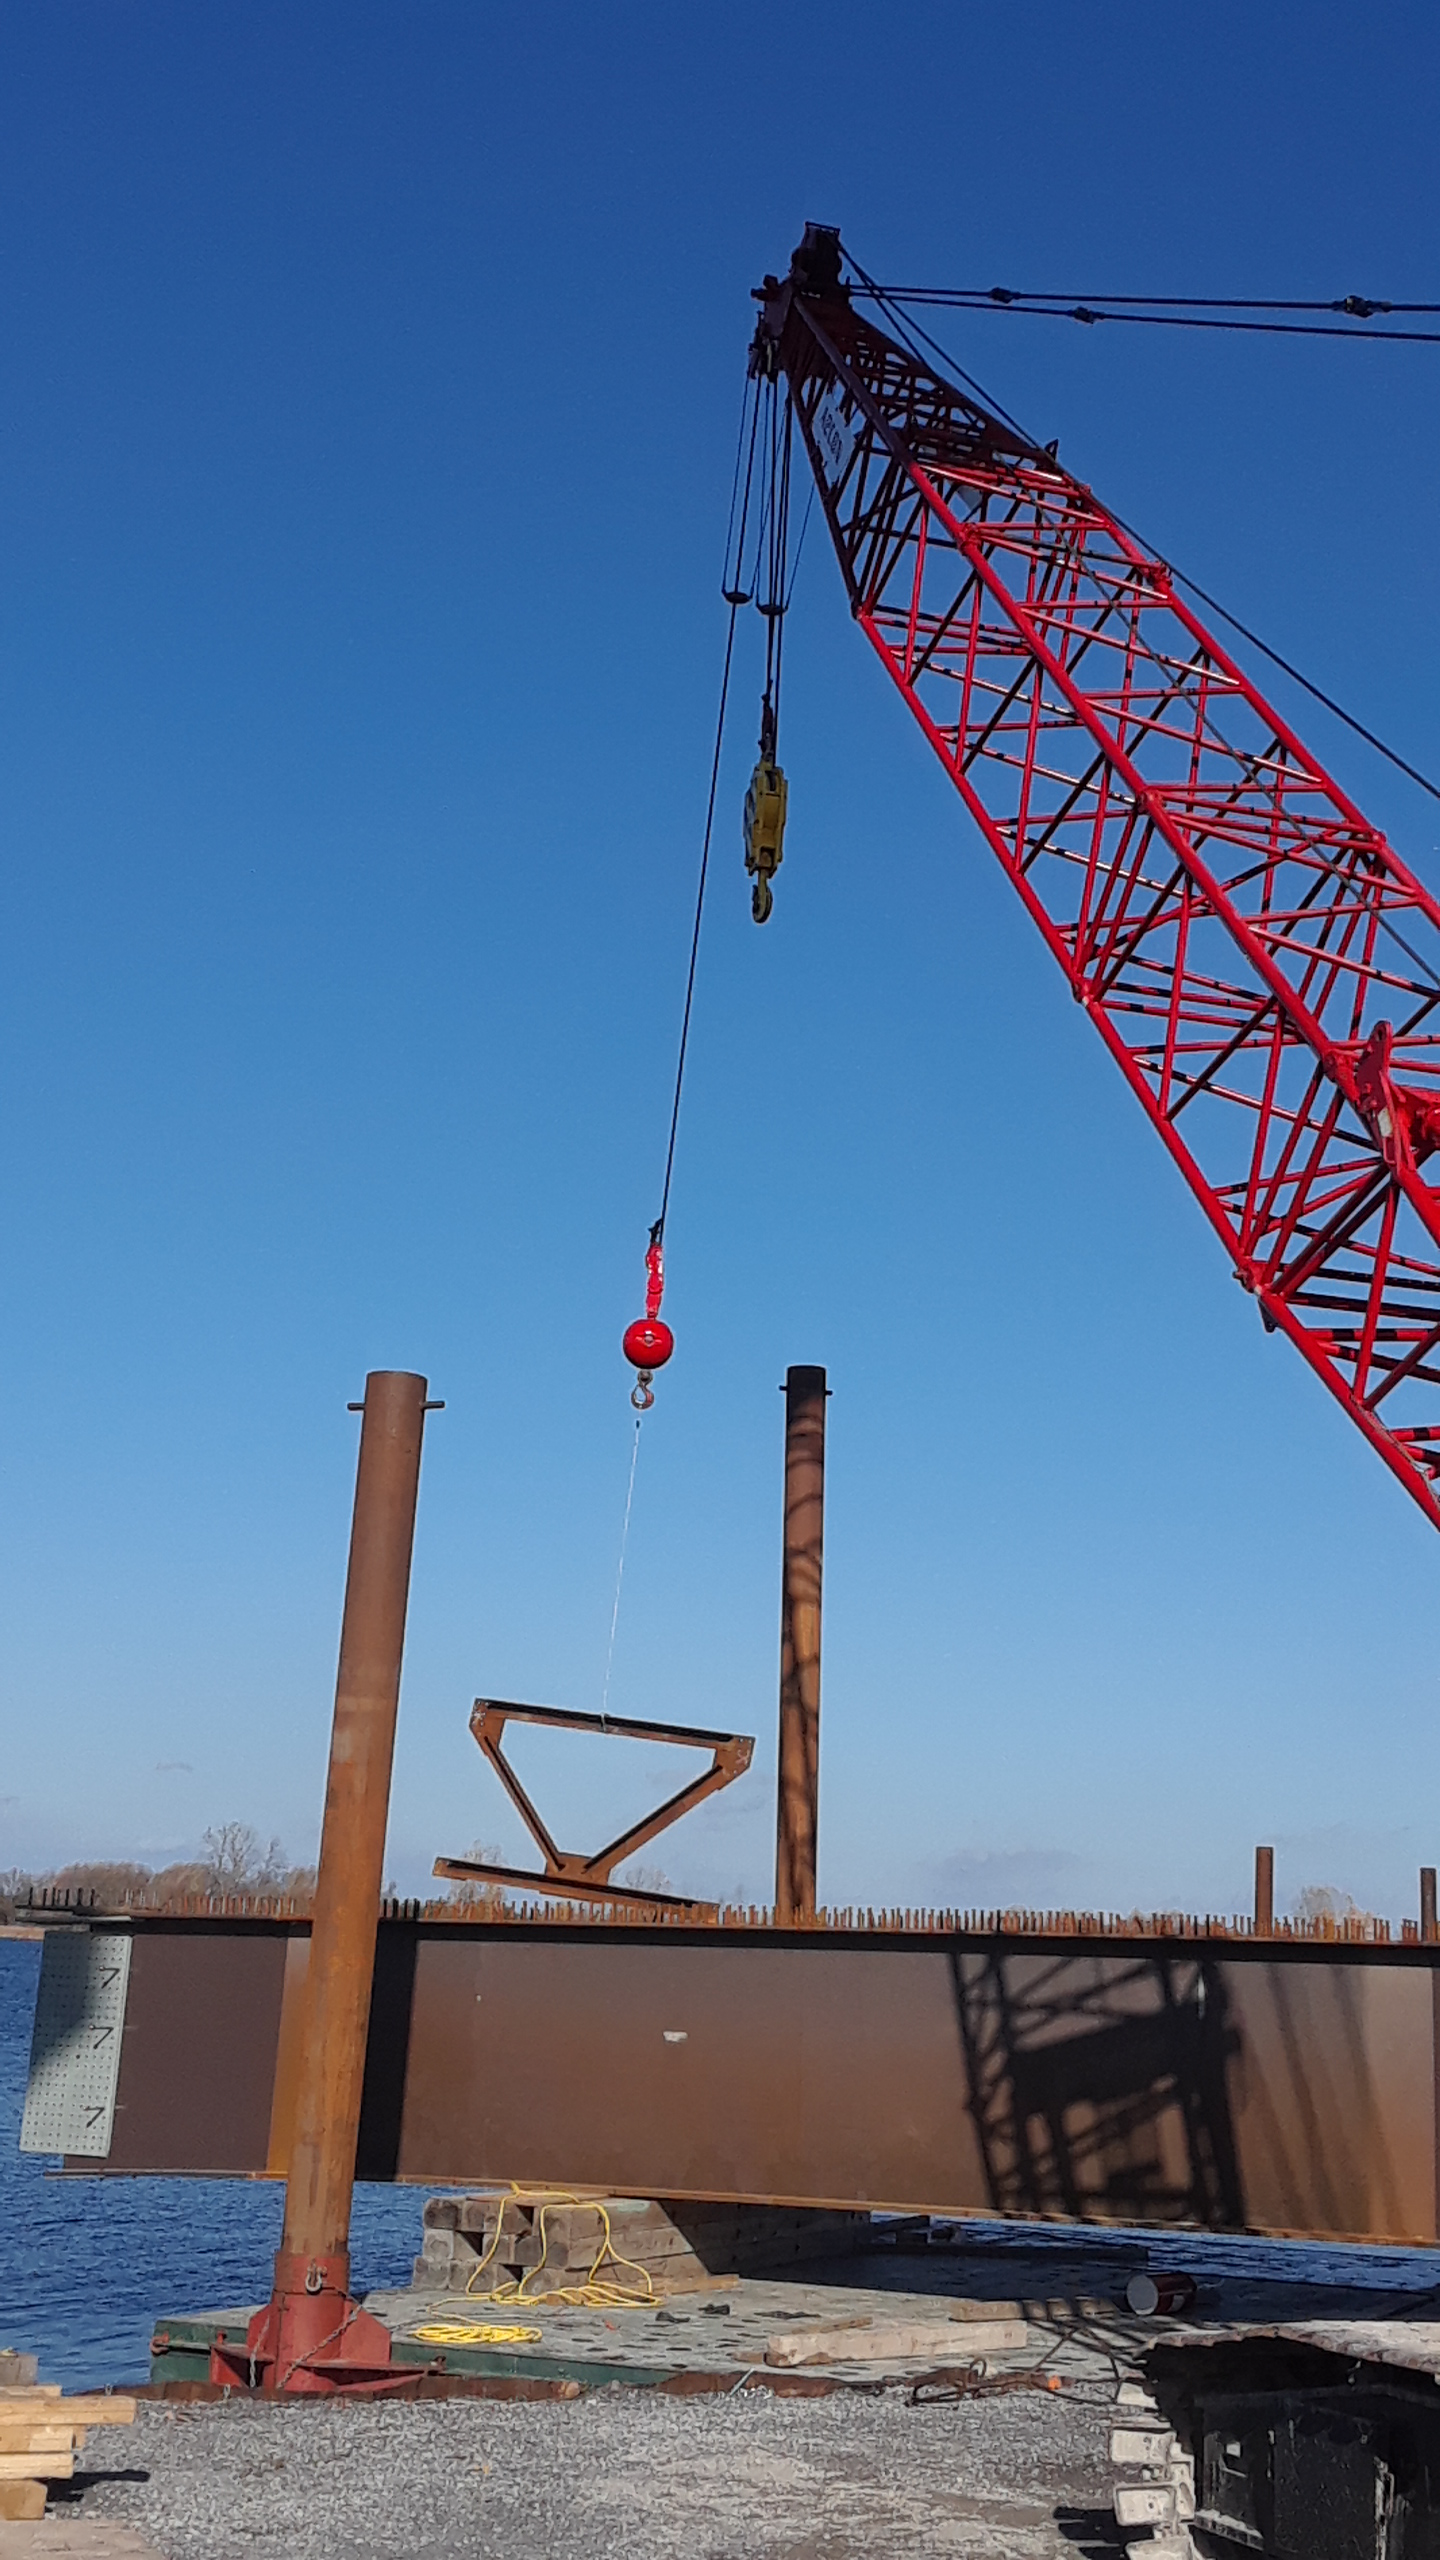 Bracing being lowered into girder sections for assembly